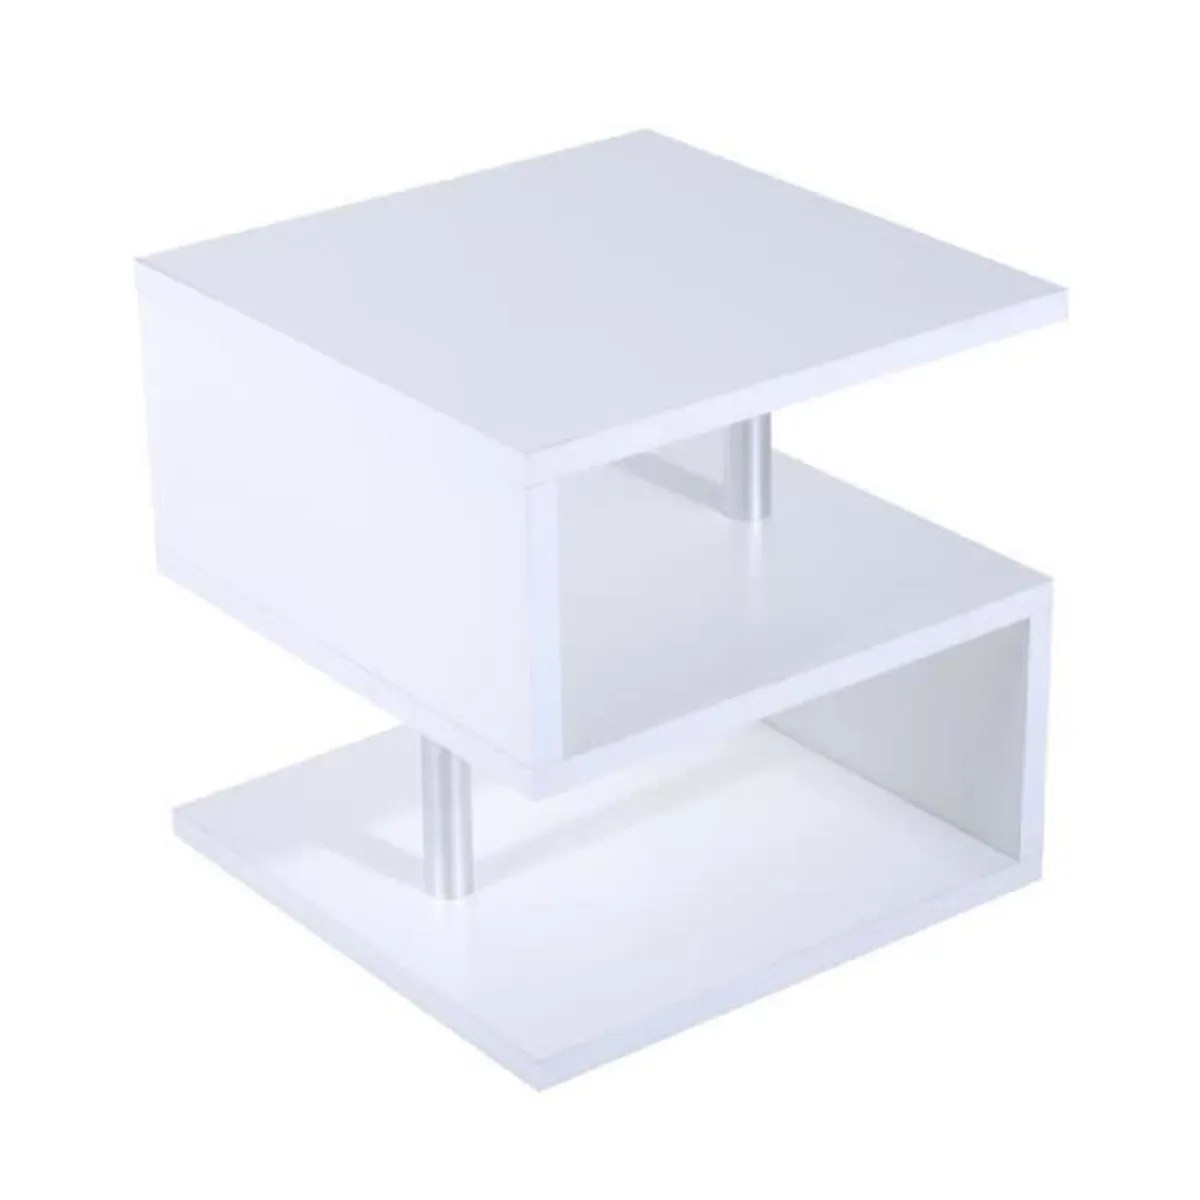 Table Basse Carre Laquee Blanc Achat Vente Table Basse - Table De Salon Moderne